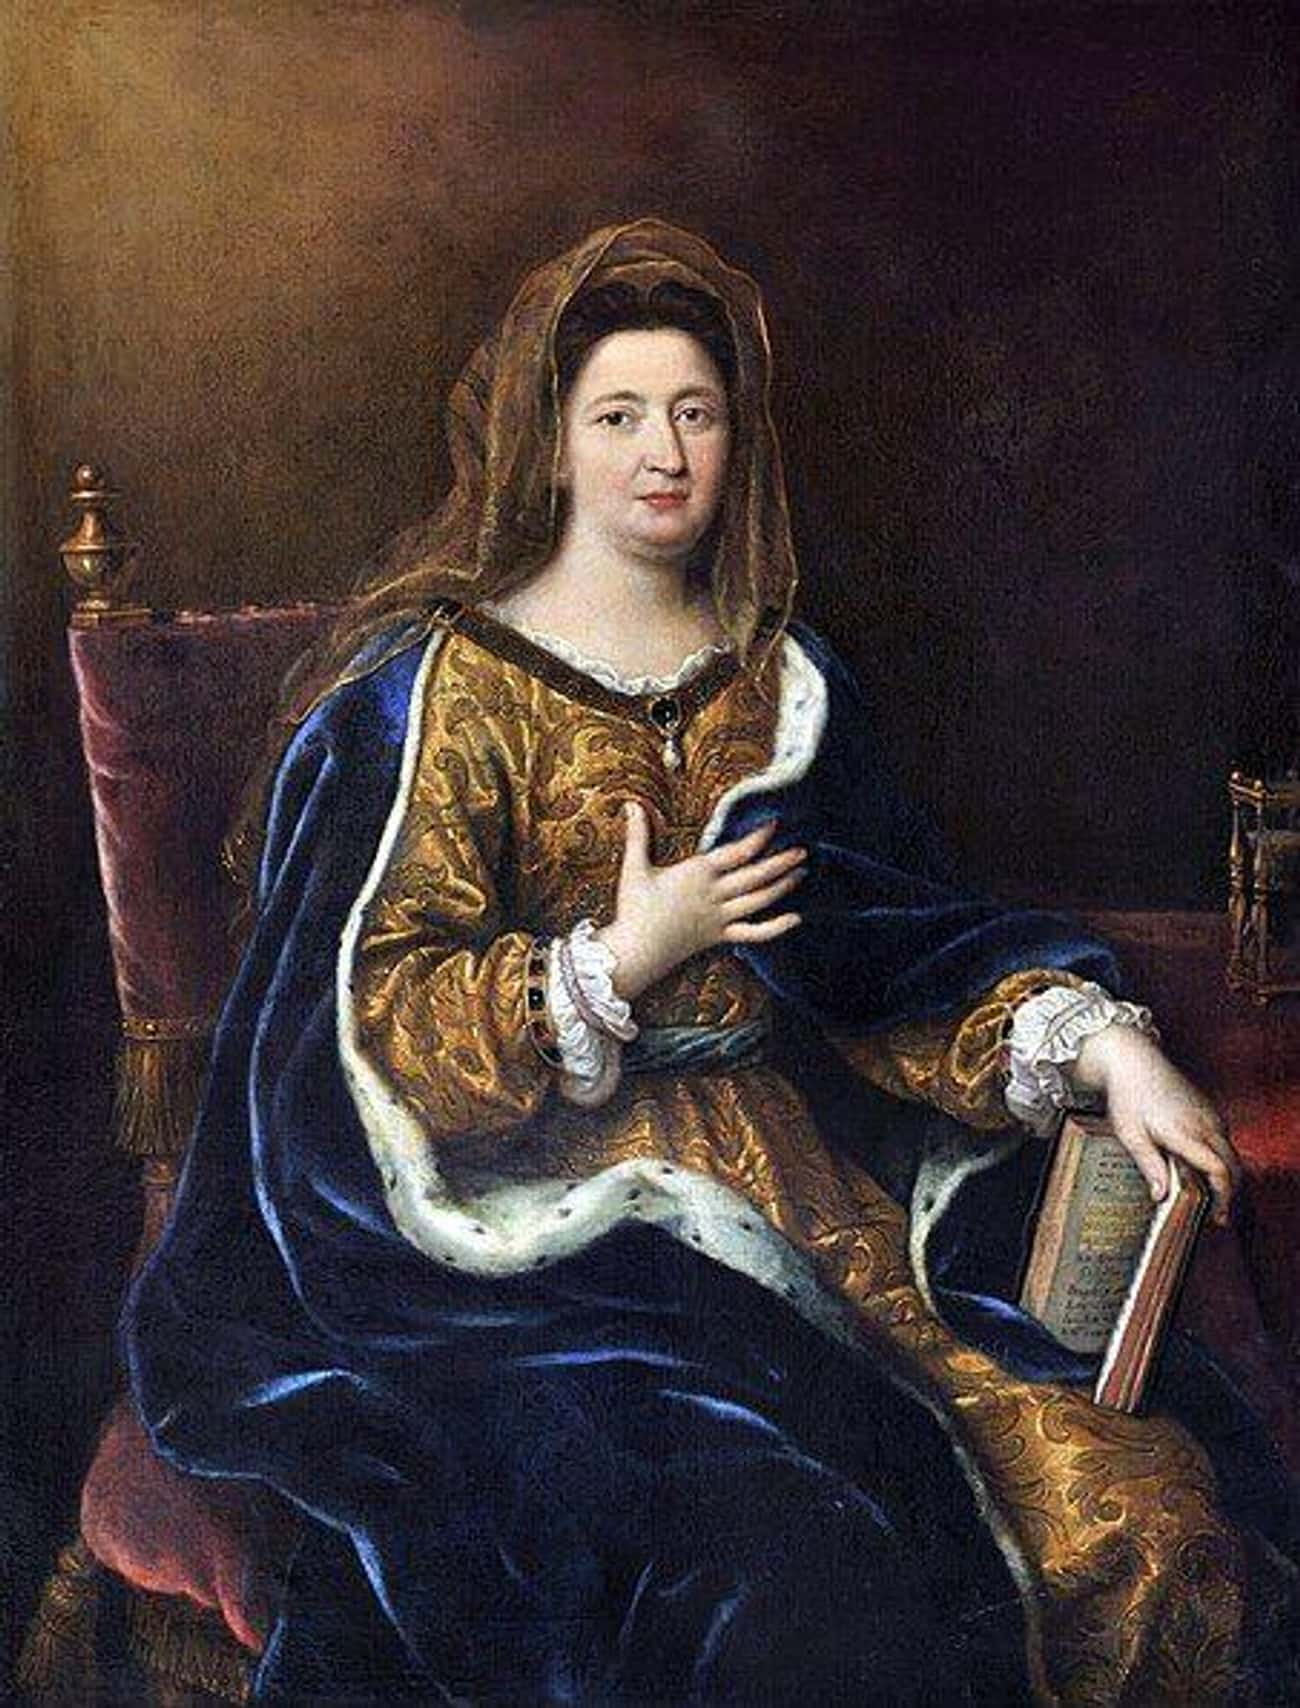 Louis XIV Had A Top-Secret Sec is listed (or ranked) 4 on the list The Biggest Scandals From The Court Of Louis XIV